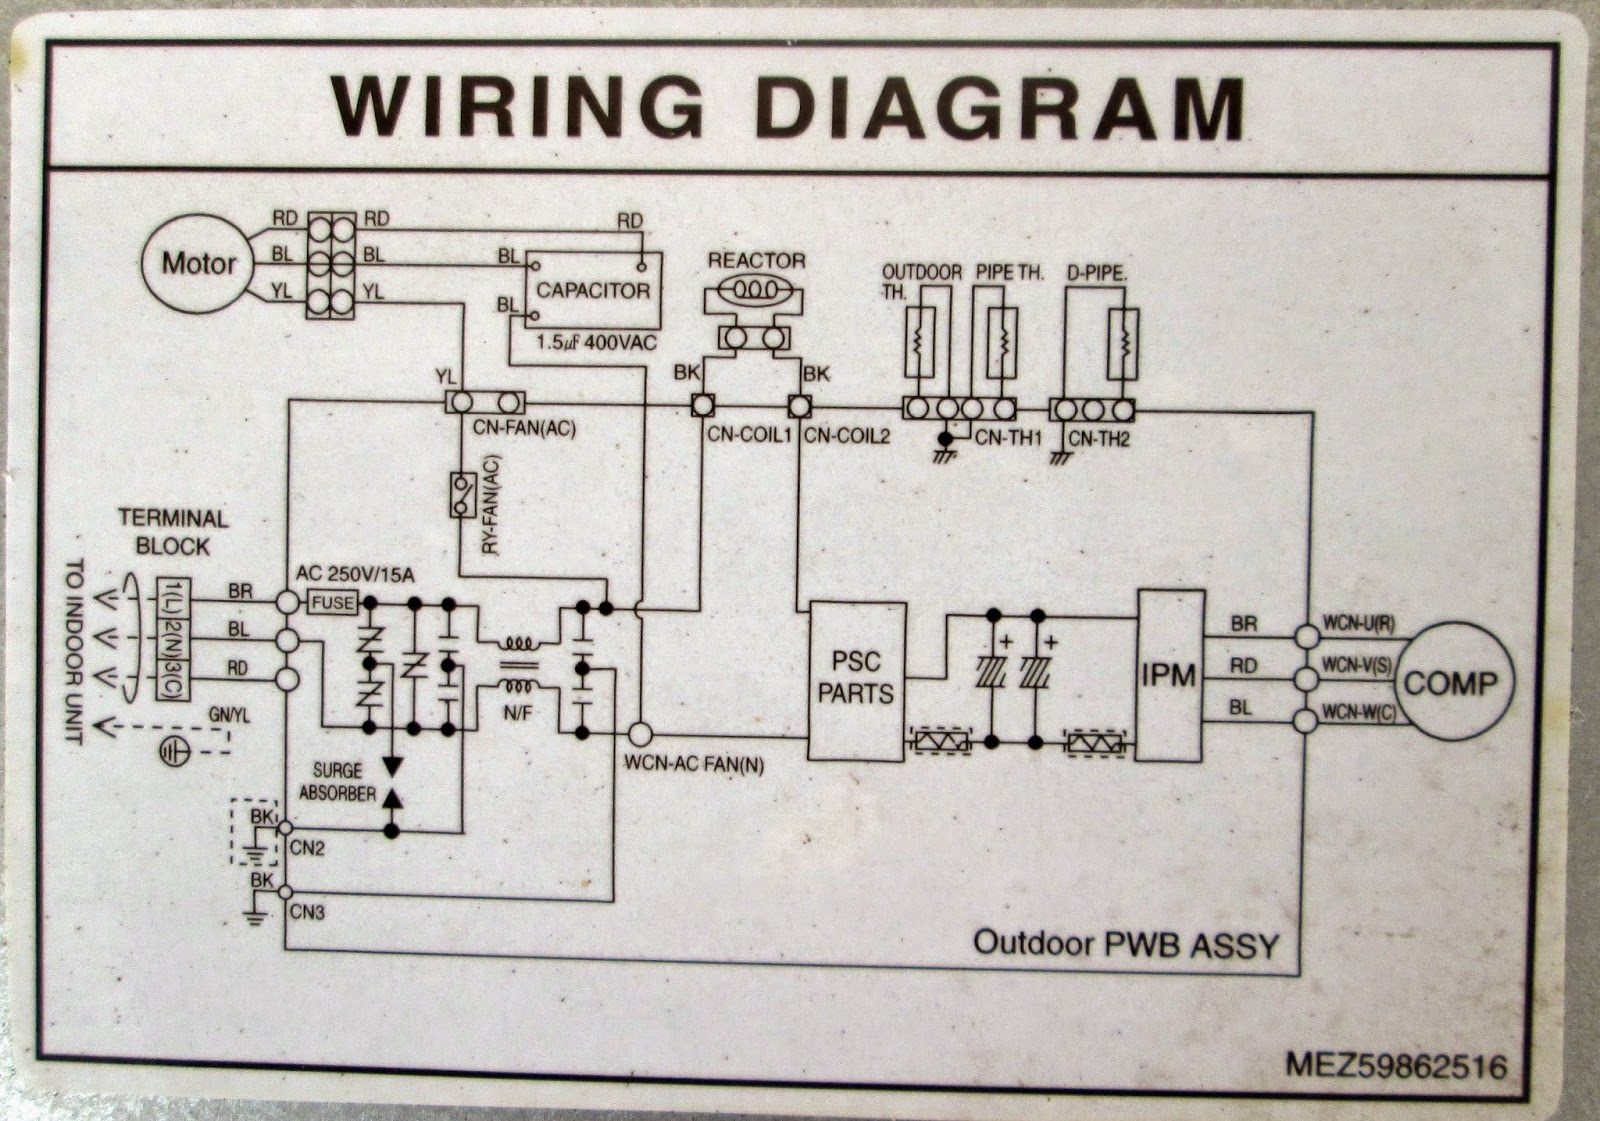 Piping Diagram Ac | Wiring Liry on electrical wiring diagram, ac heat pump diagram, cable tv wiring diagram, microwave wiring diagram, ac heat cover, compressor wiring diagram, tempstar air conditioner wiring diagram,